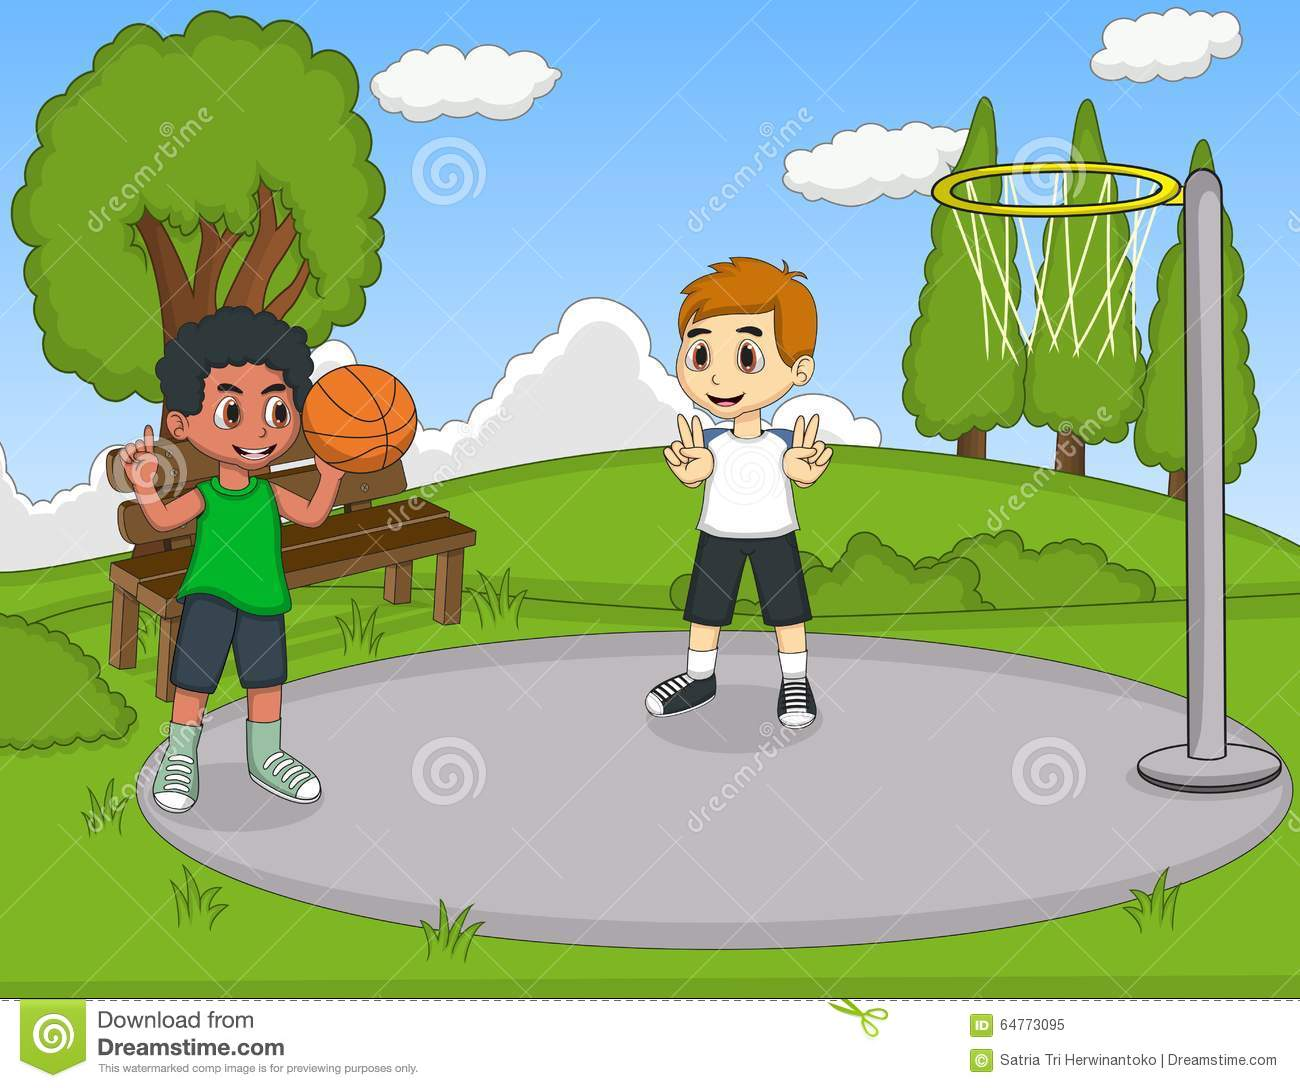 Kids Playing Basketball In The Park Stock Vector Image